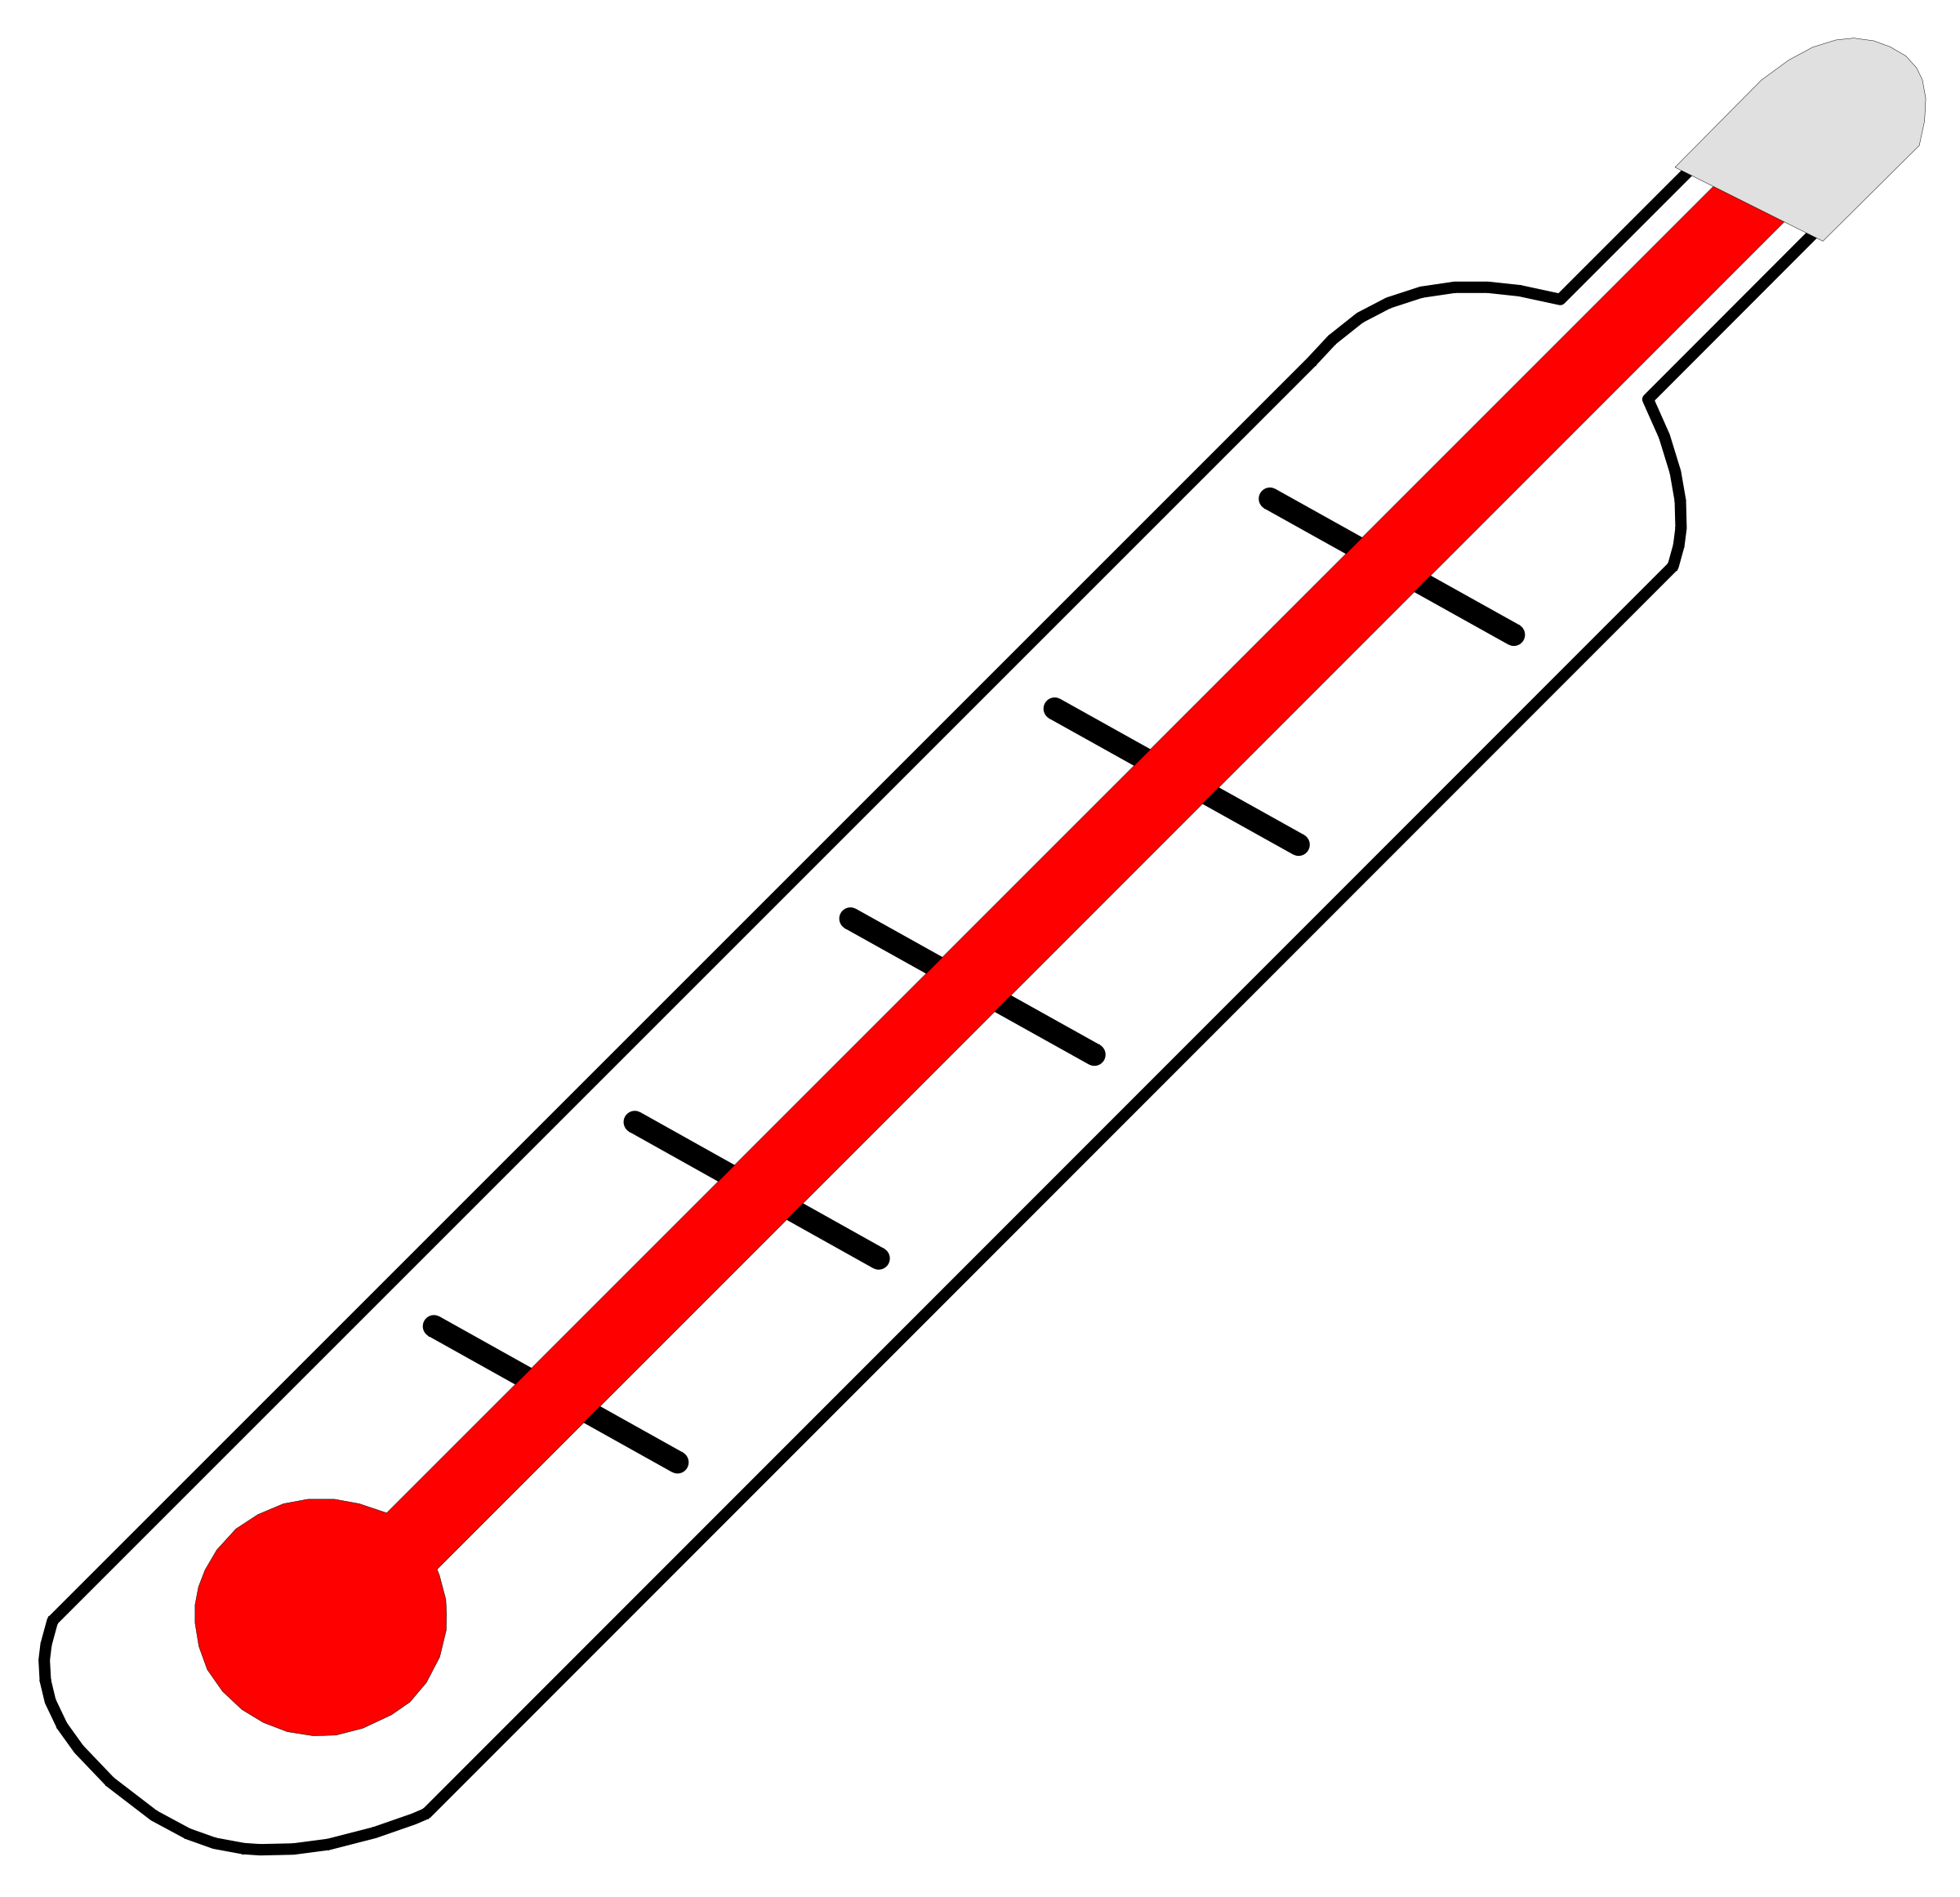 2400x2323 Fundraising Thermometer Clip Art Free Clipart Images 2